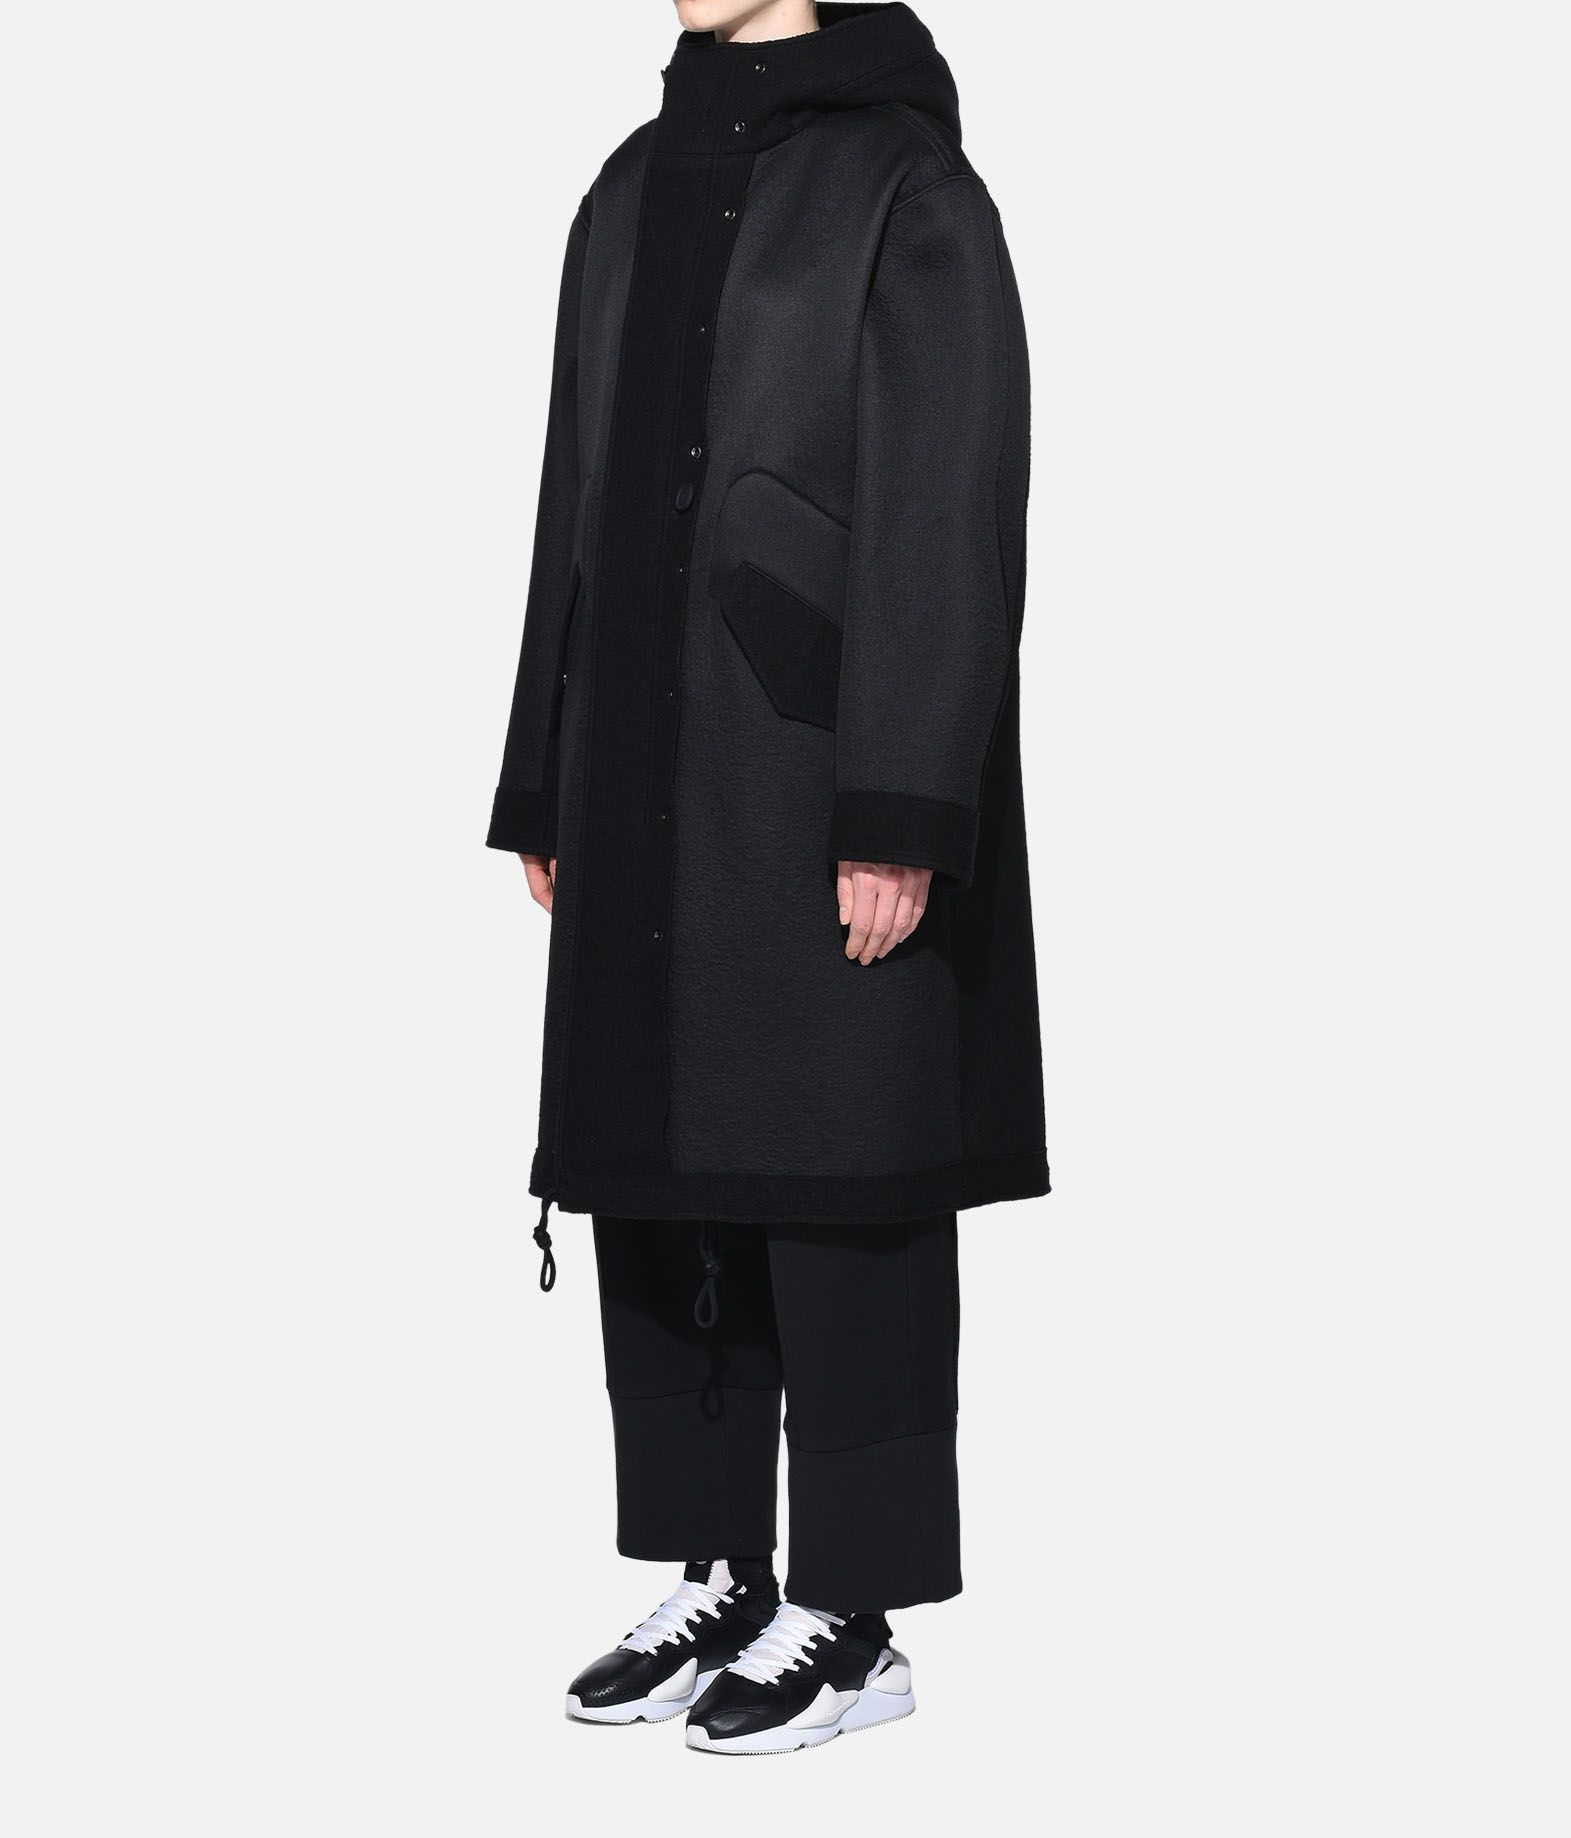 Y-3 Y-3 Reversible Wool Parka Coat Woman e